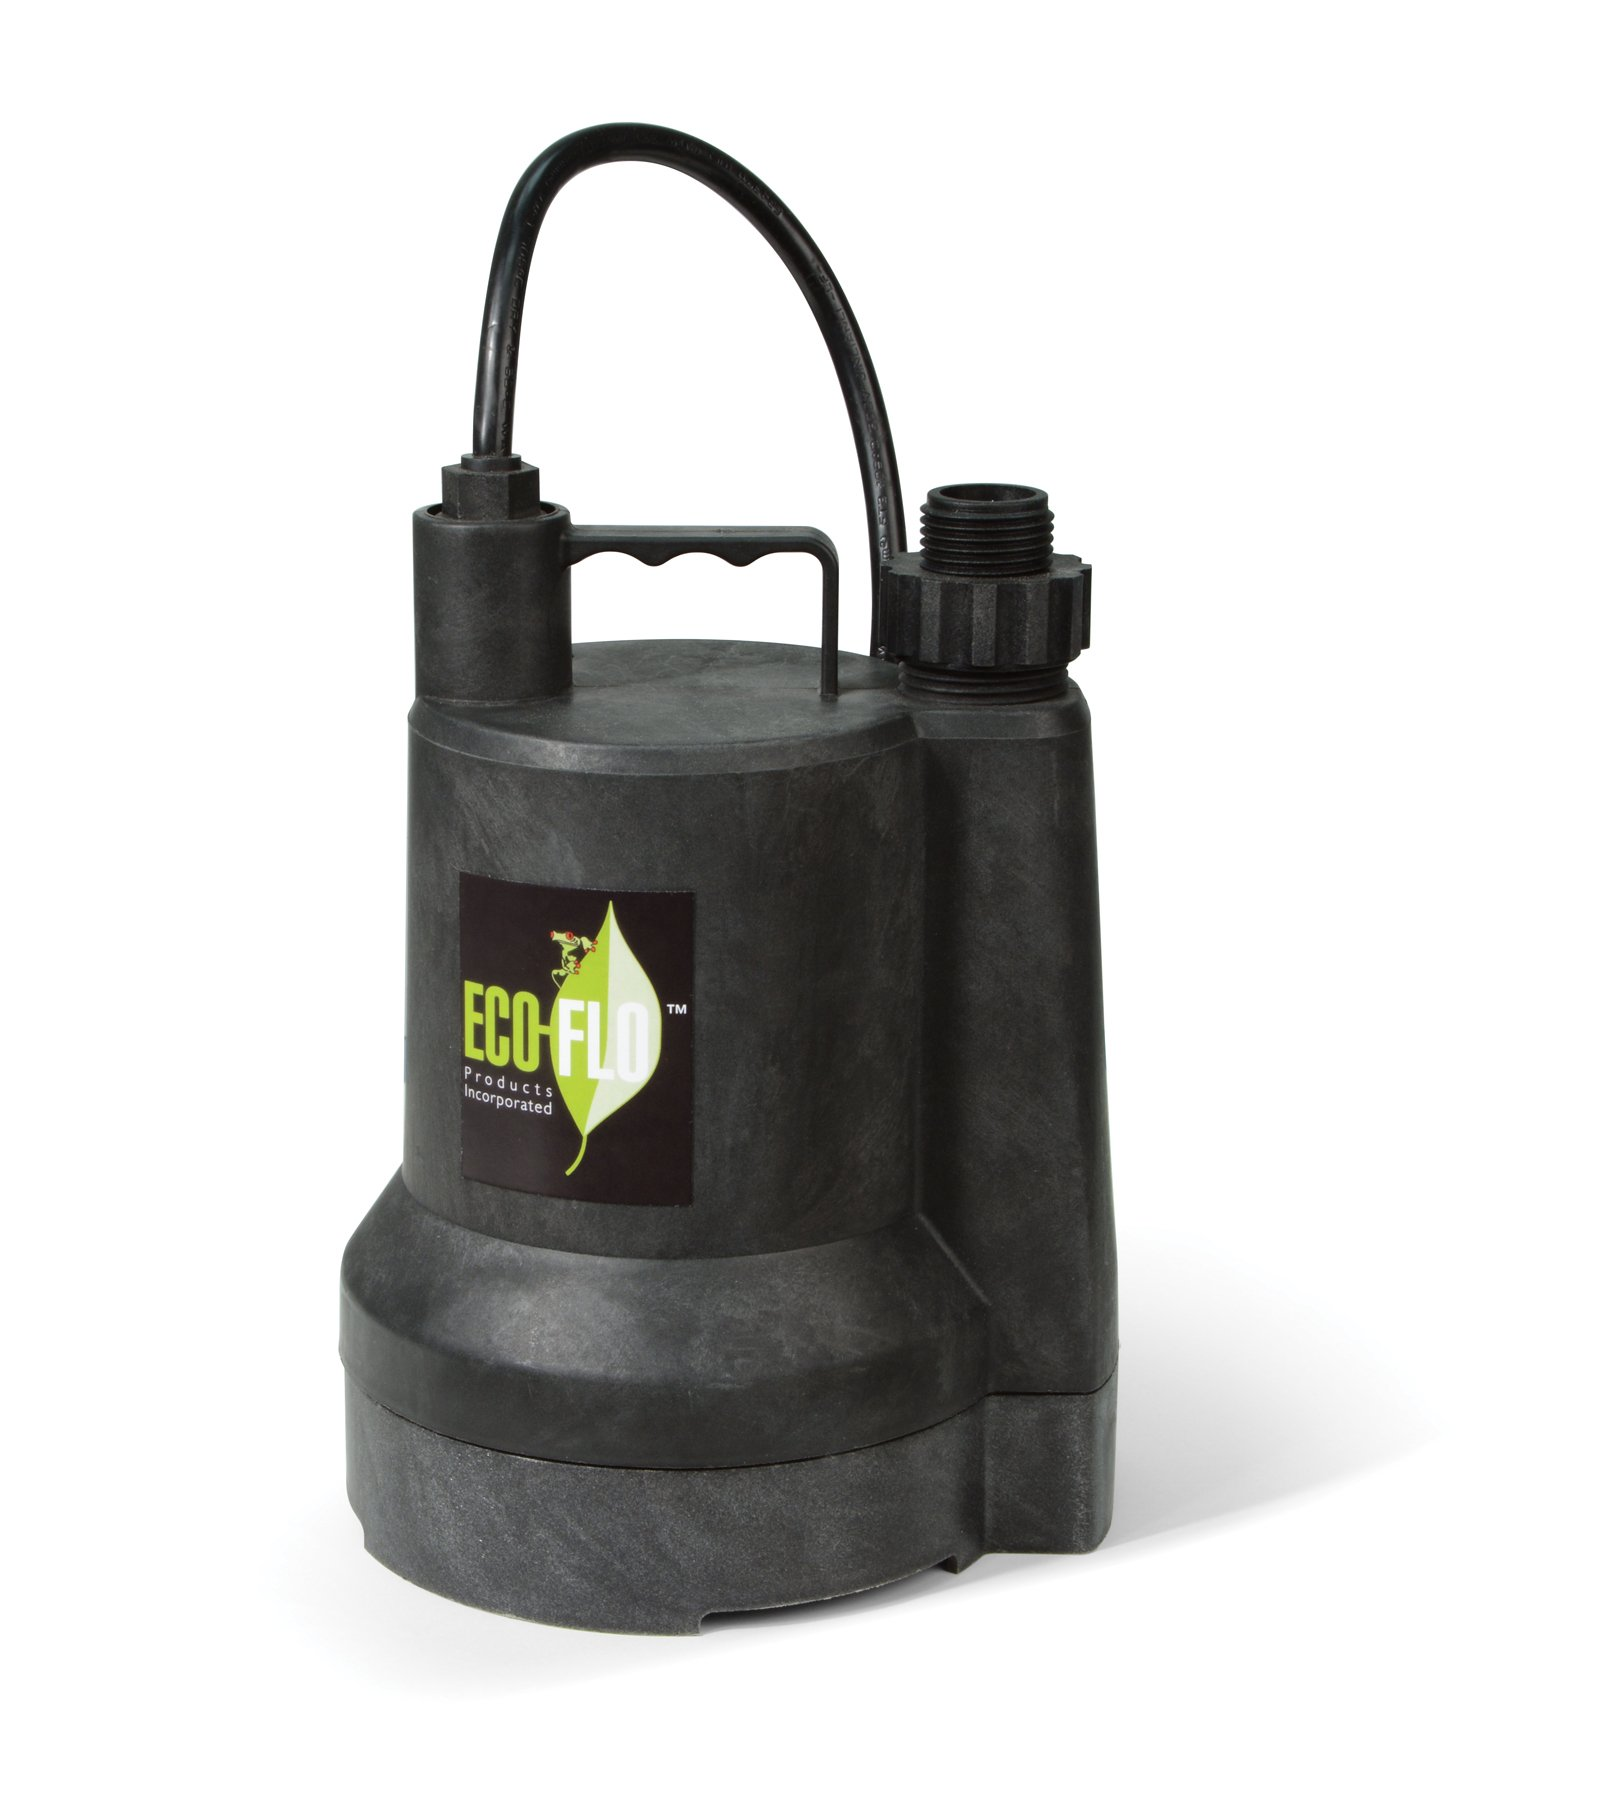 ECO-FLO Products SUP55 Manual Submersible Utility Pump, 1/4 HP, 1,980 GPH by ECO-FLO PRODUCTS INCORPORATED